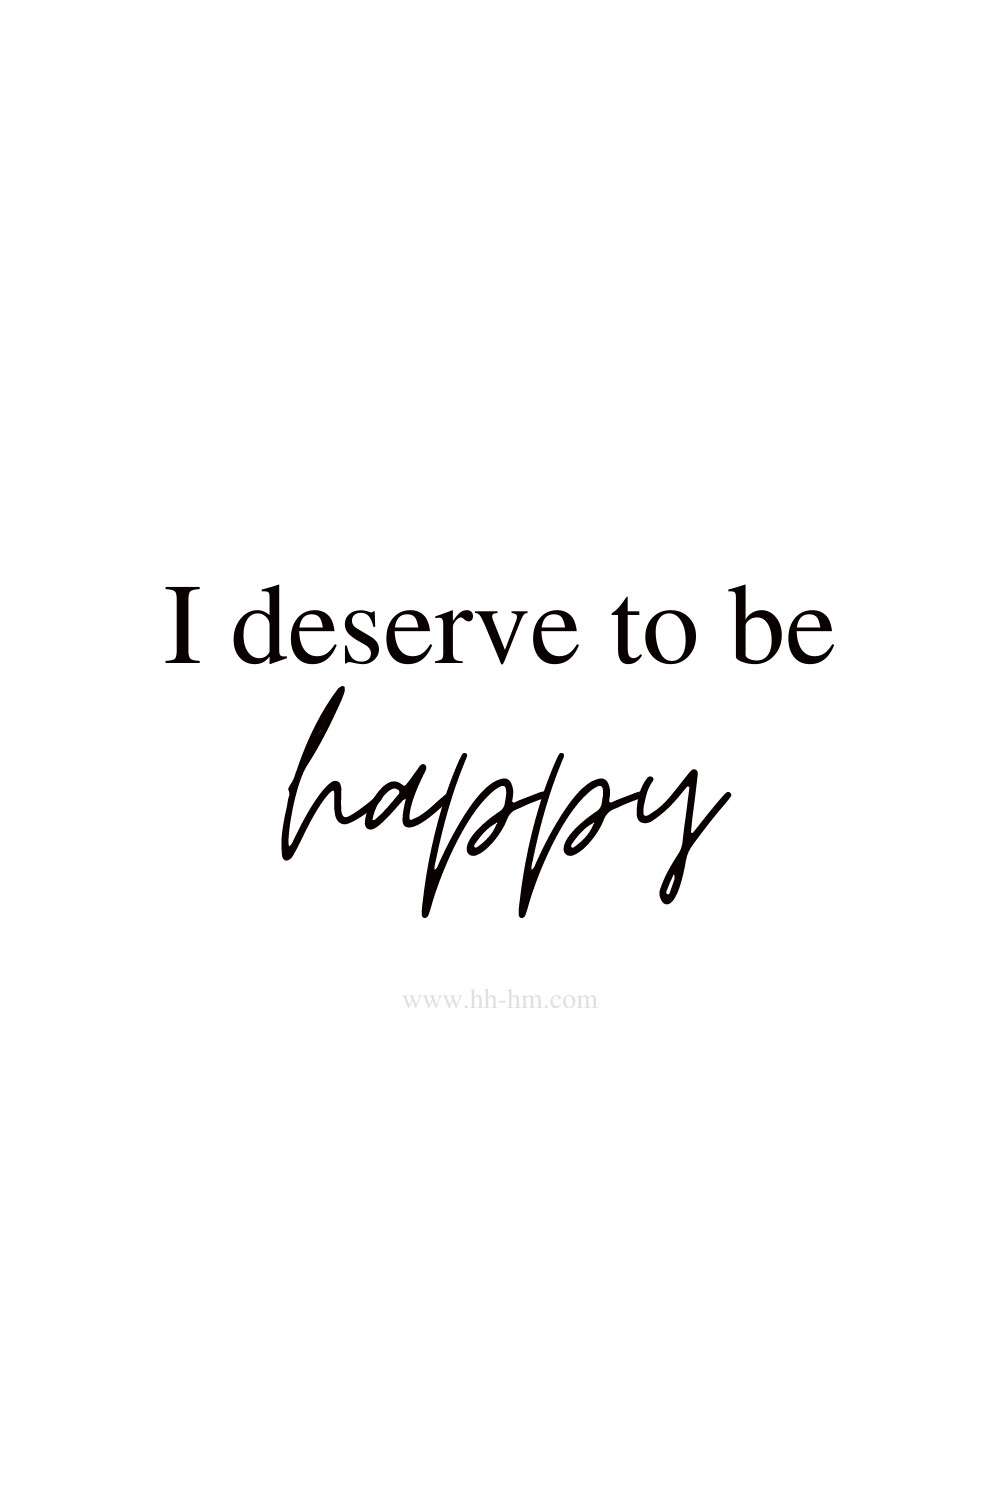 I deserve to be happy - positive morning affirmations for happiness